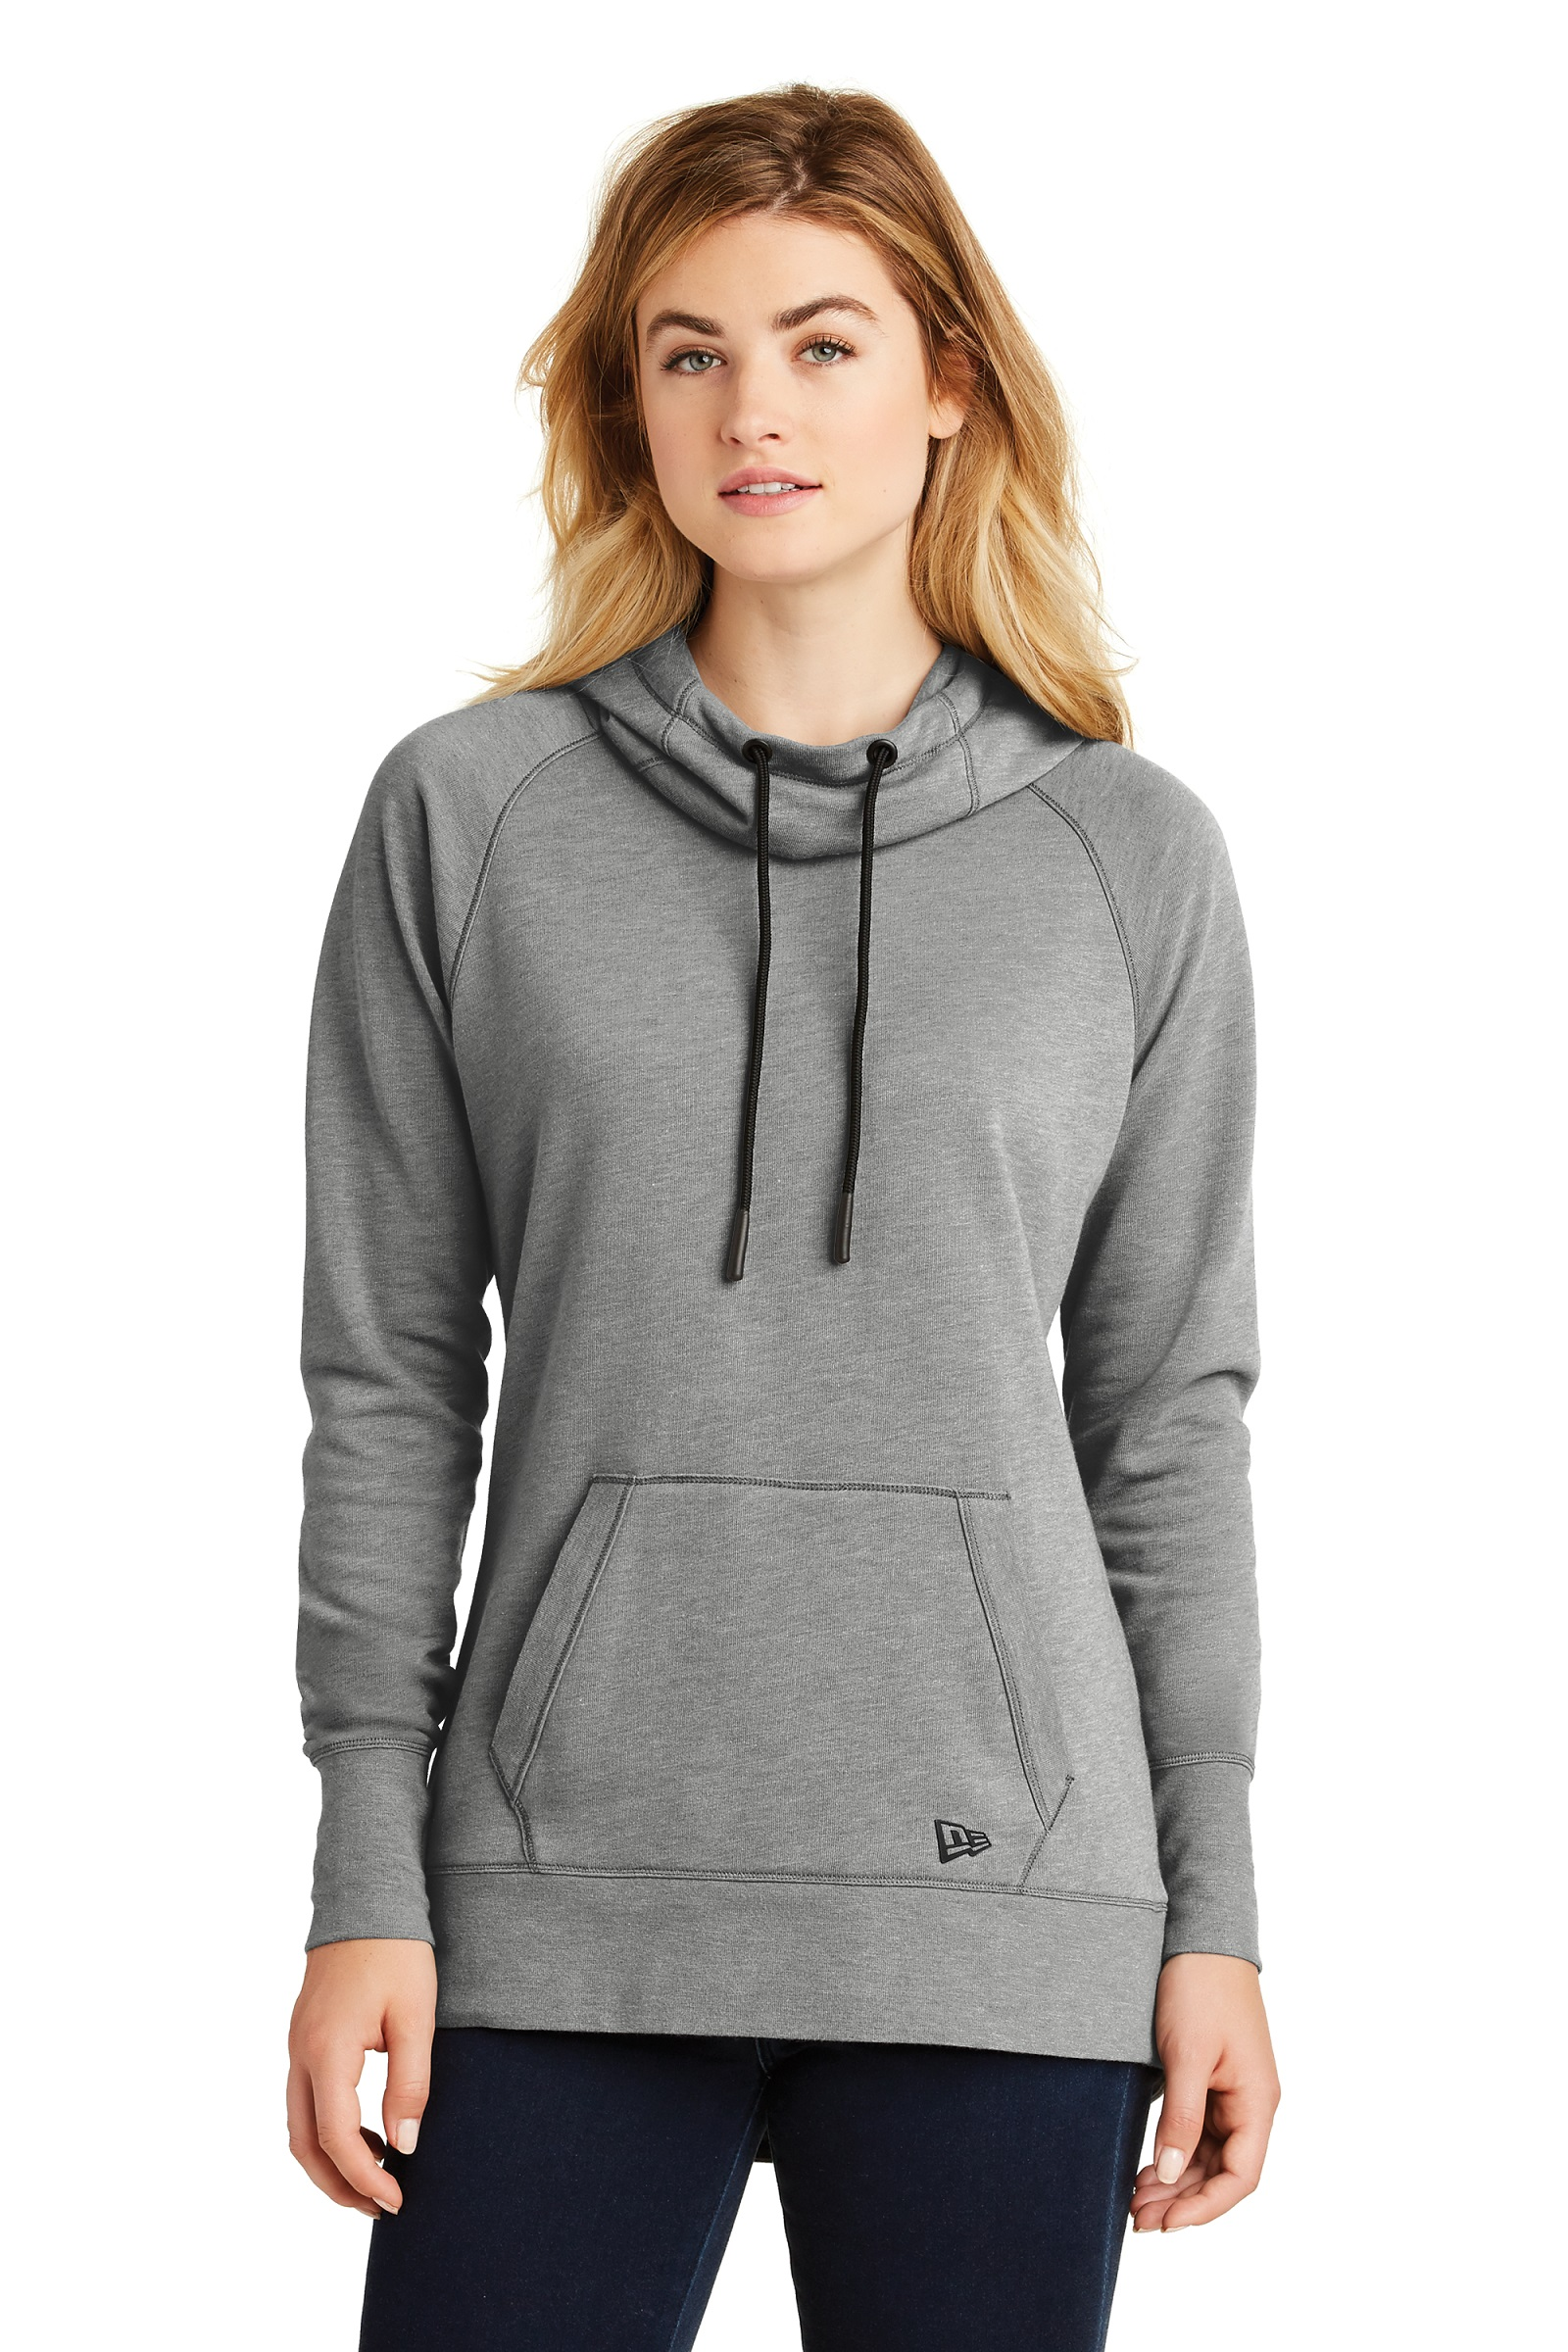 New Era Embroidered Women's Tri-Blend Fleece Pullover Hoodie